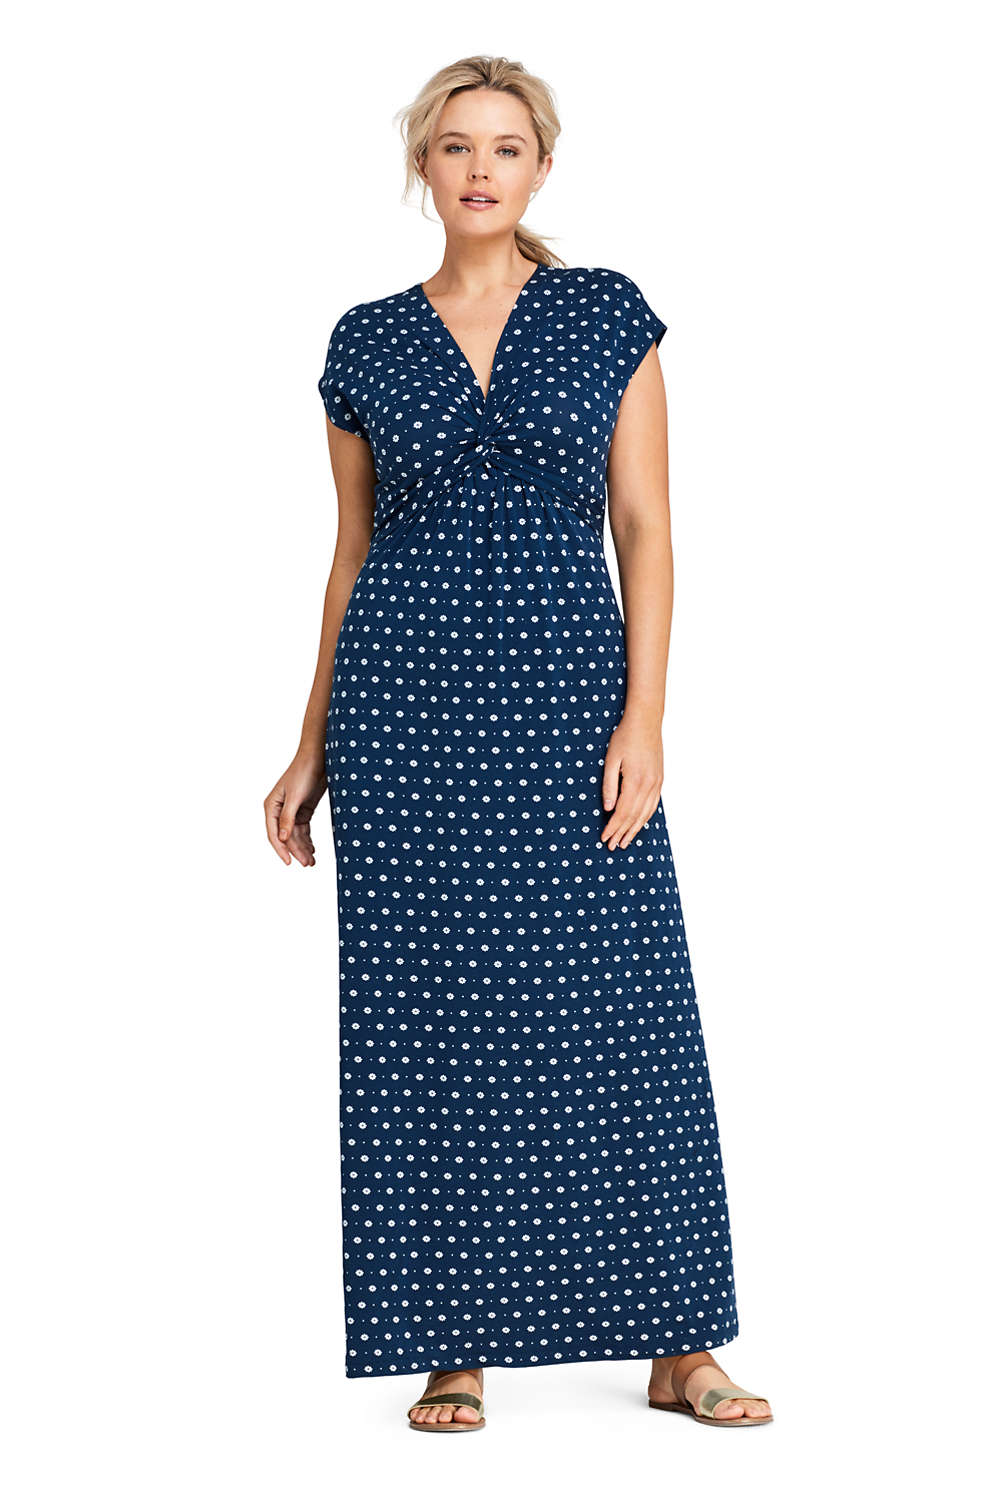 Women S Plus Size Cap Sleeve Knot Front Maxi Dress From Lands End